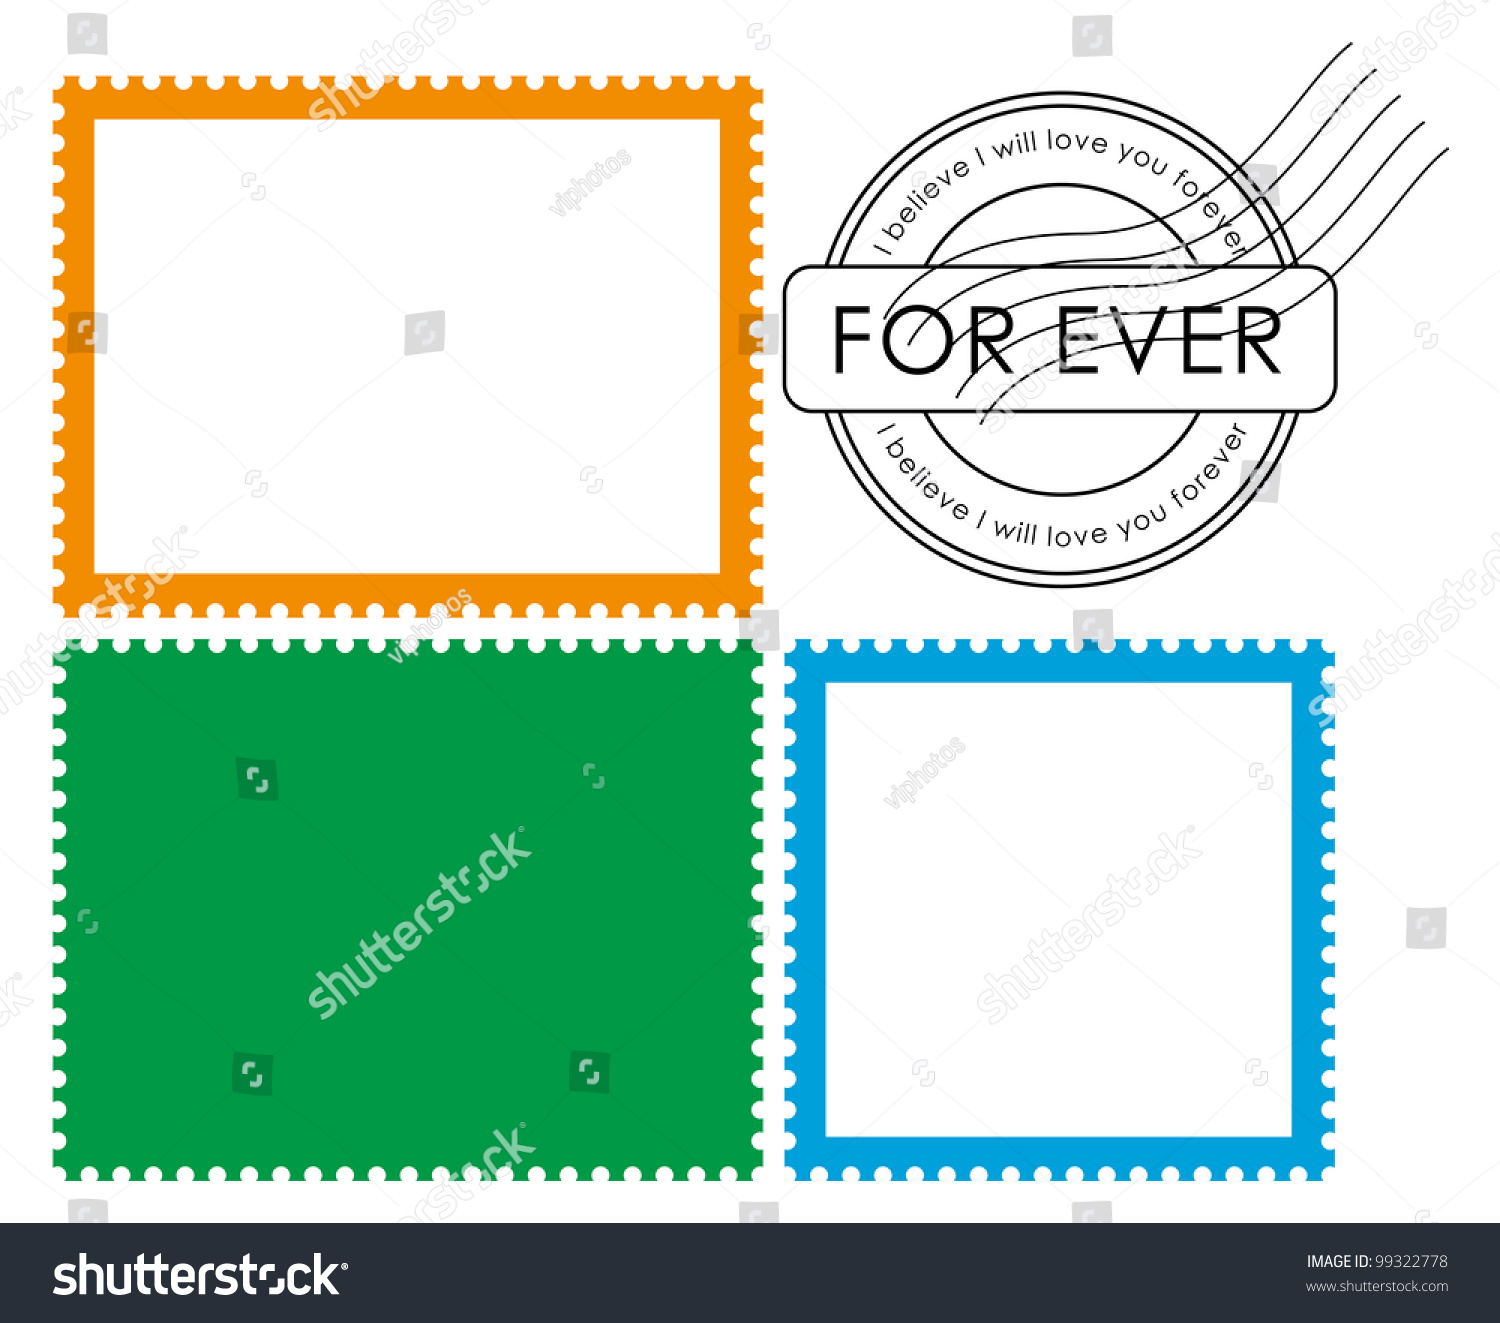 Blank Postage Stamp-Vector - 99322778 : Shutterstock